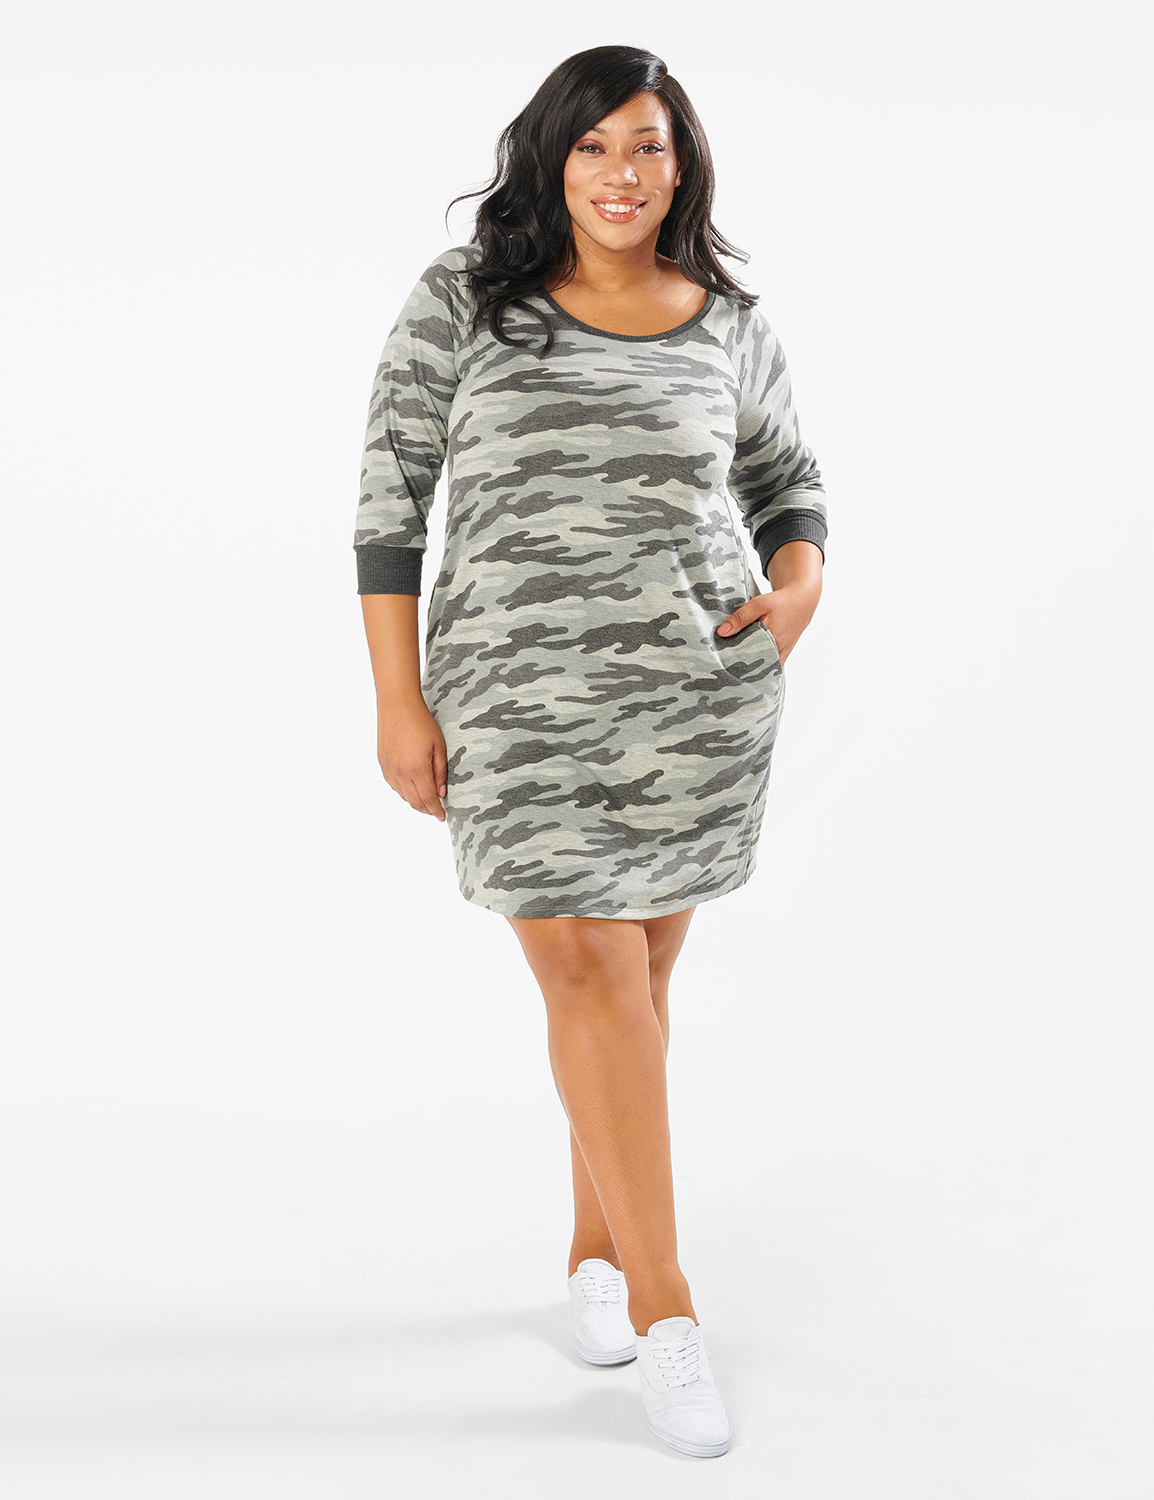 Camouflage Knit Dress - Plus -Charcoal - Front